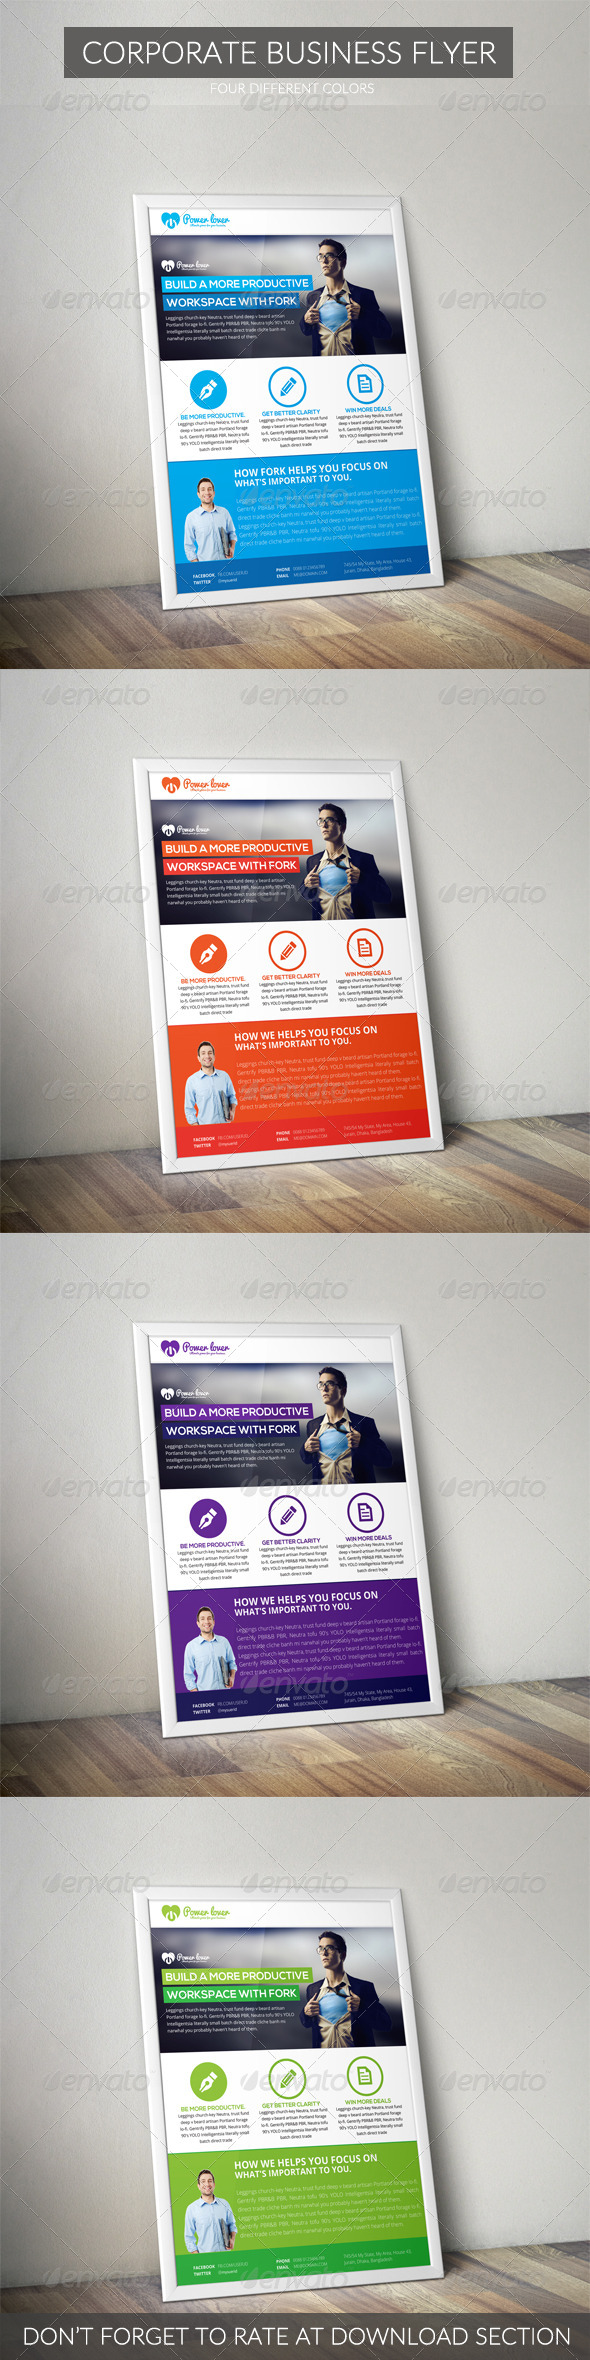 GraphicRiver Corporate Business Flyer 7041089